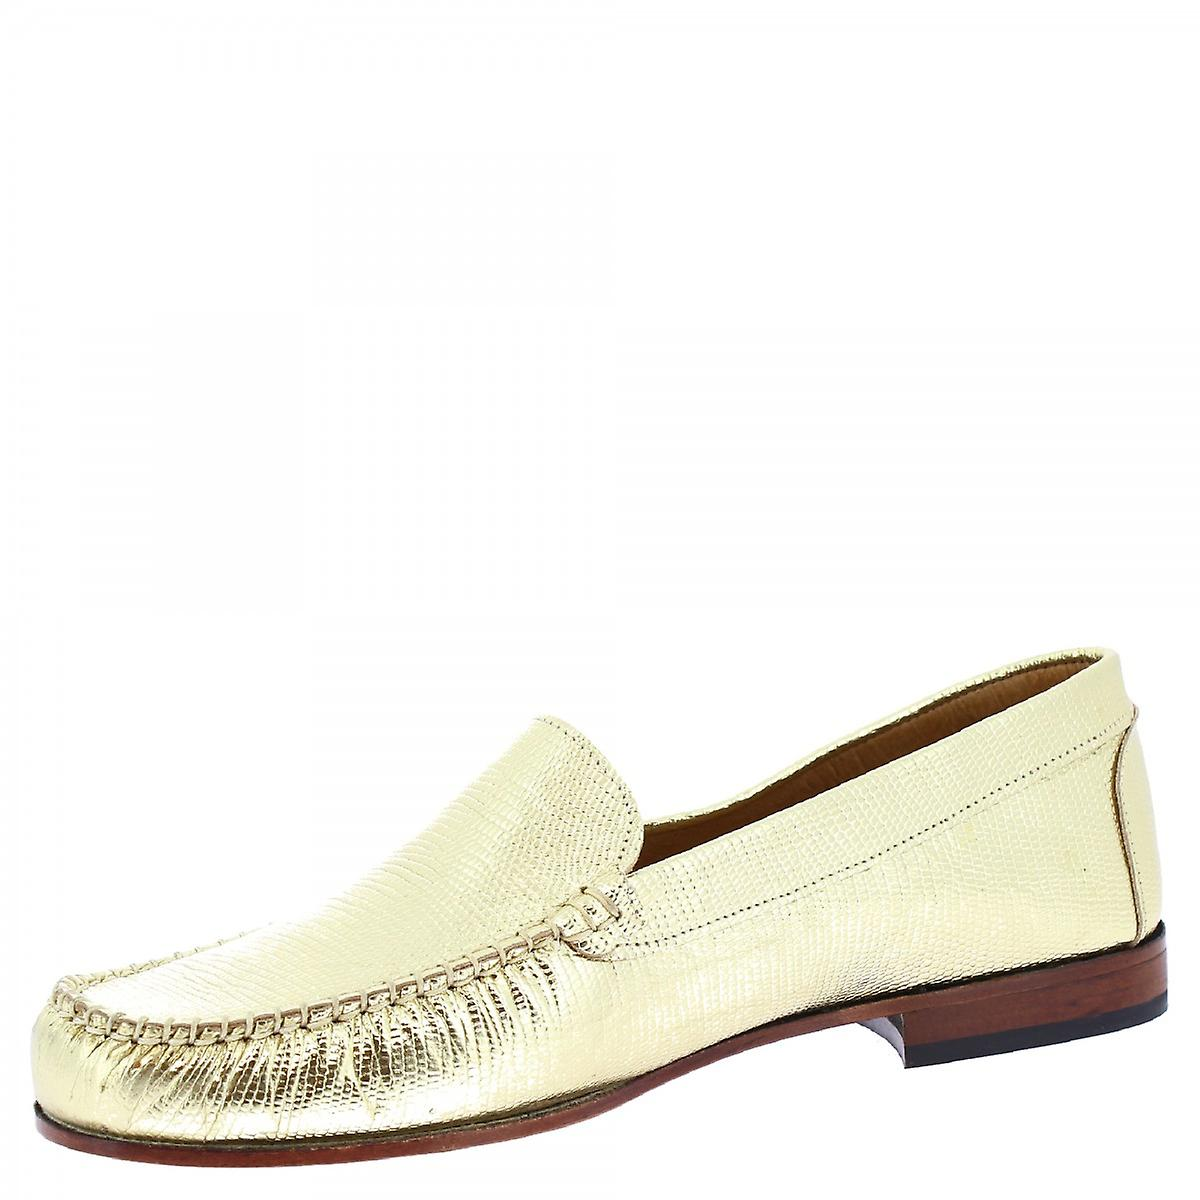 Leonardo Shoes Women-apos;s handmade slip on loafers shoes gold laminated leather cQ5Gr2